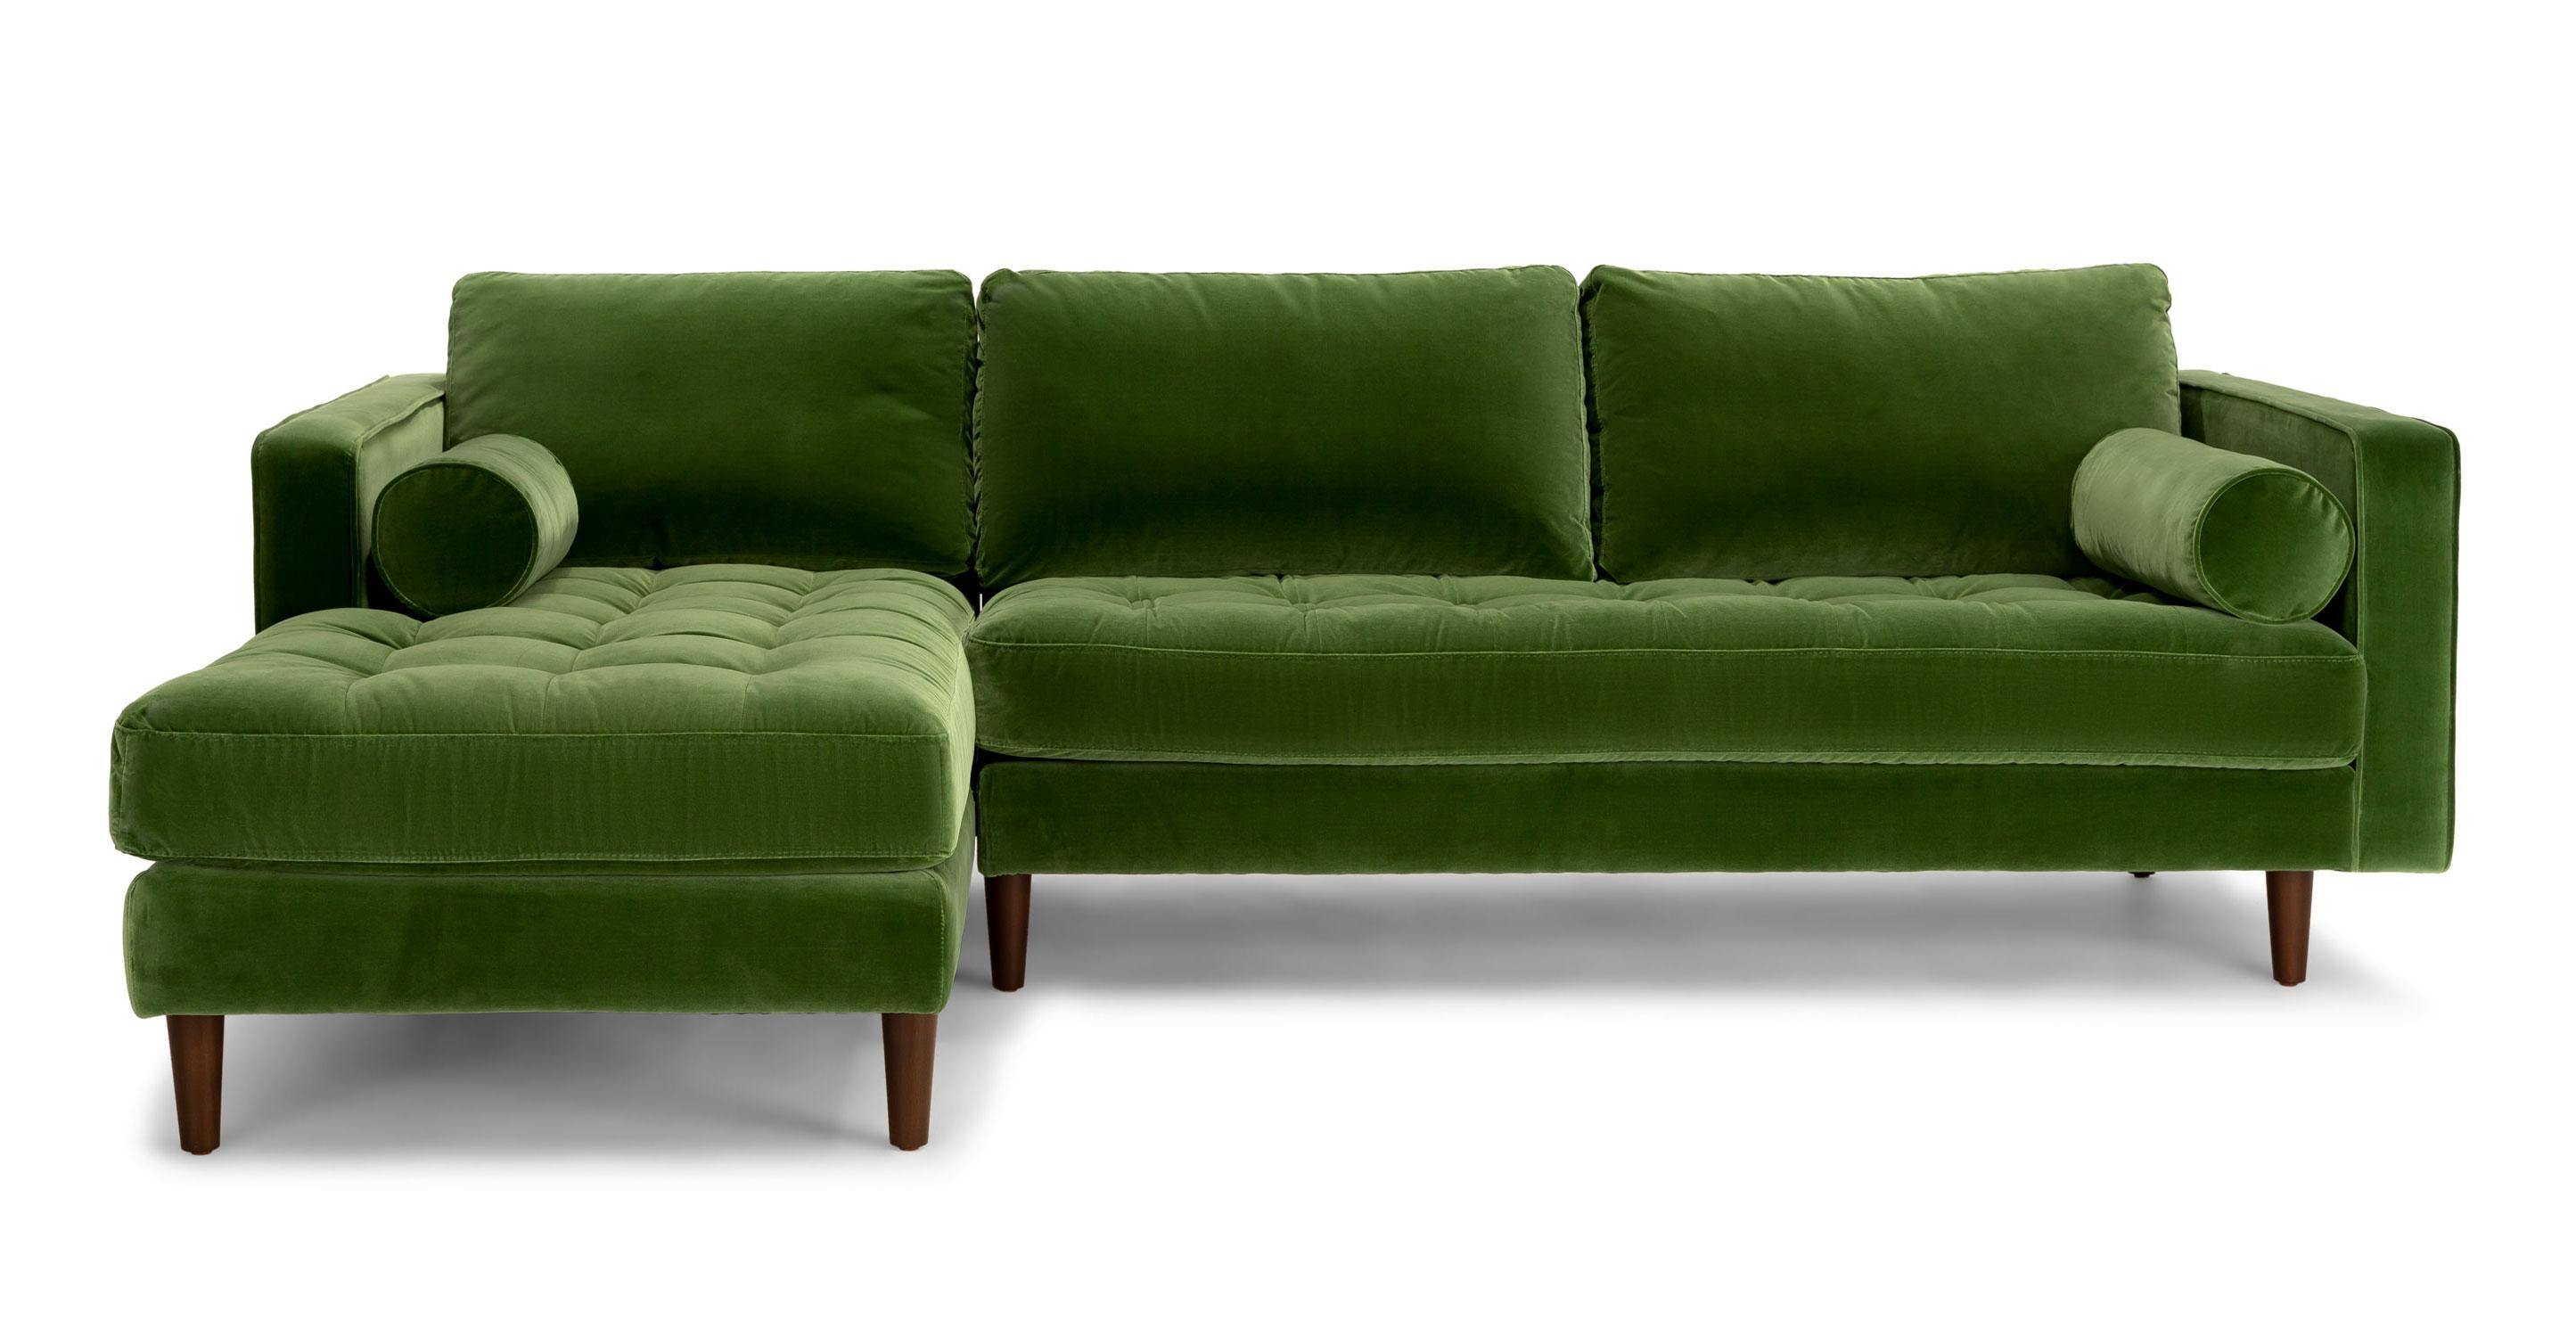 Sofas Center : Unique Green Velvet Sofa Pictures Inspirations For Green Sofas (Image 19 of 20)